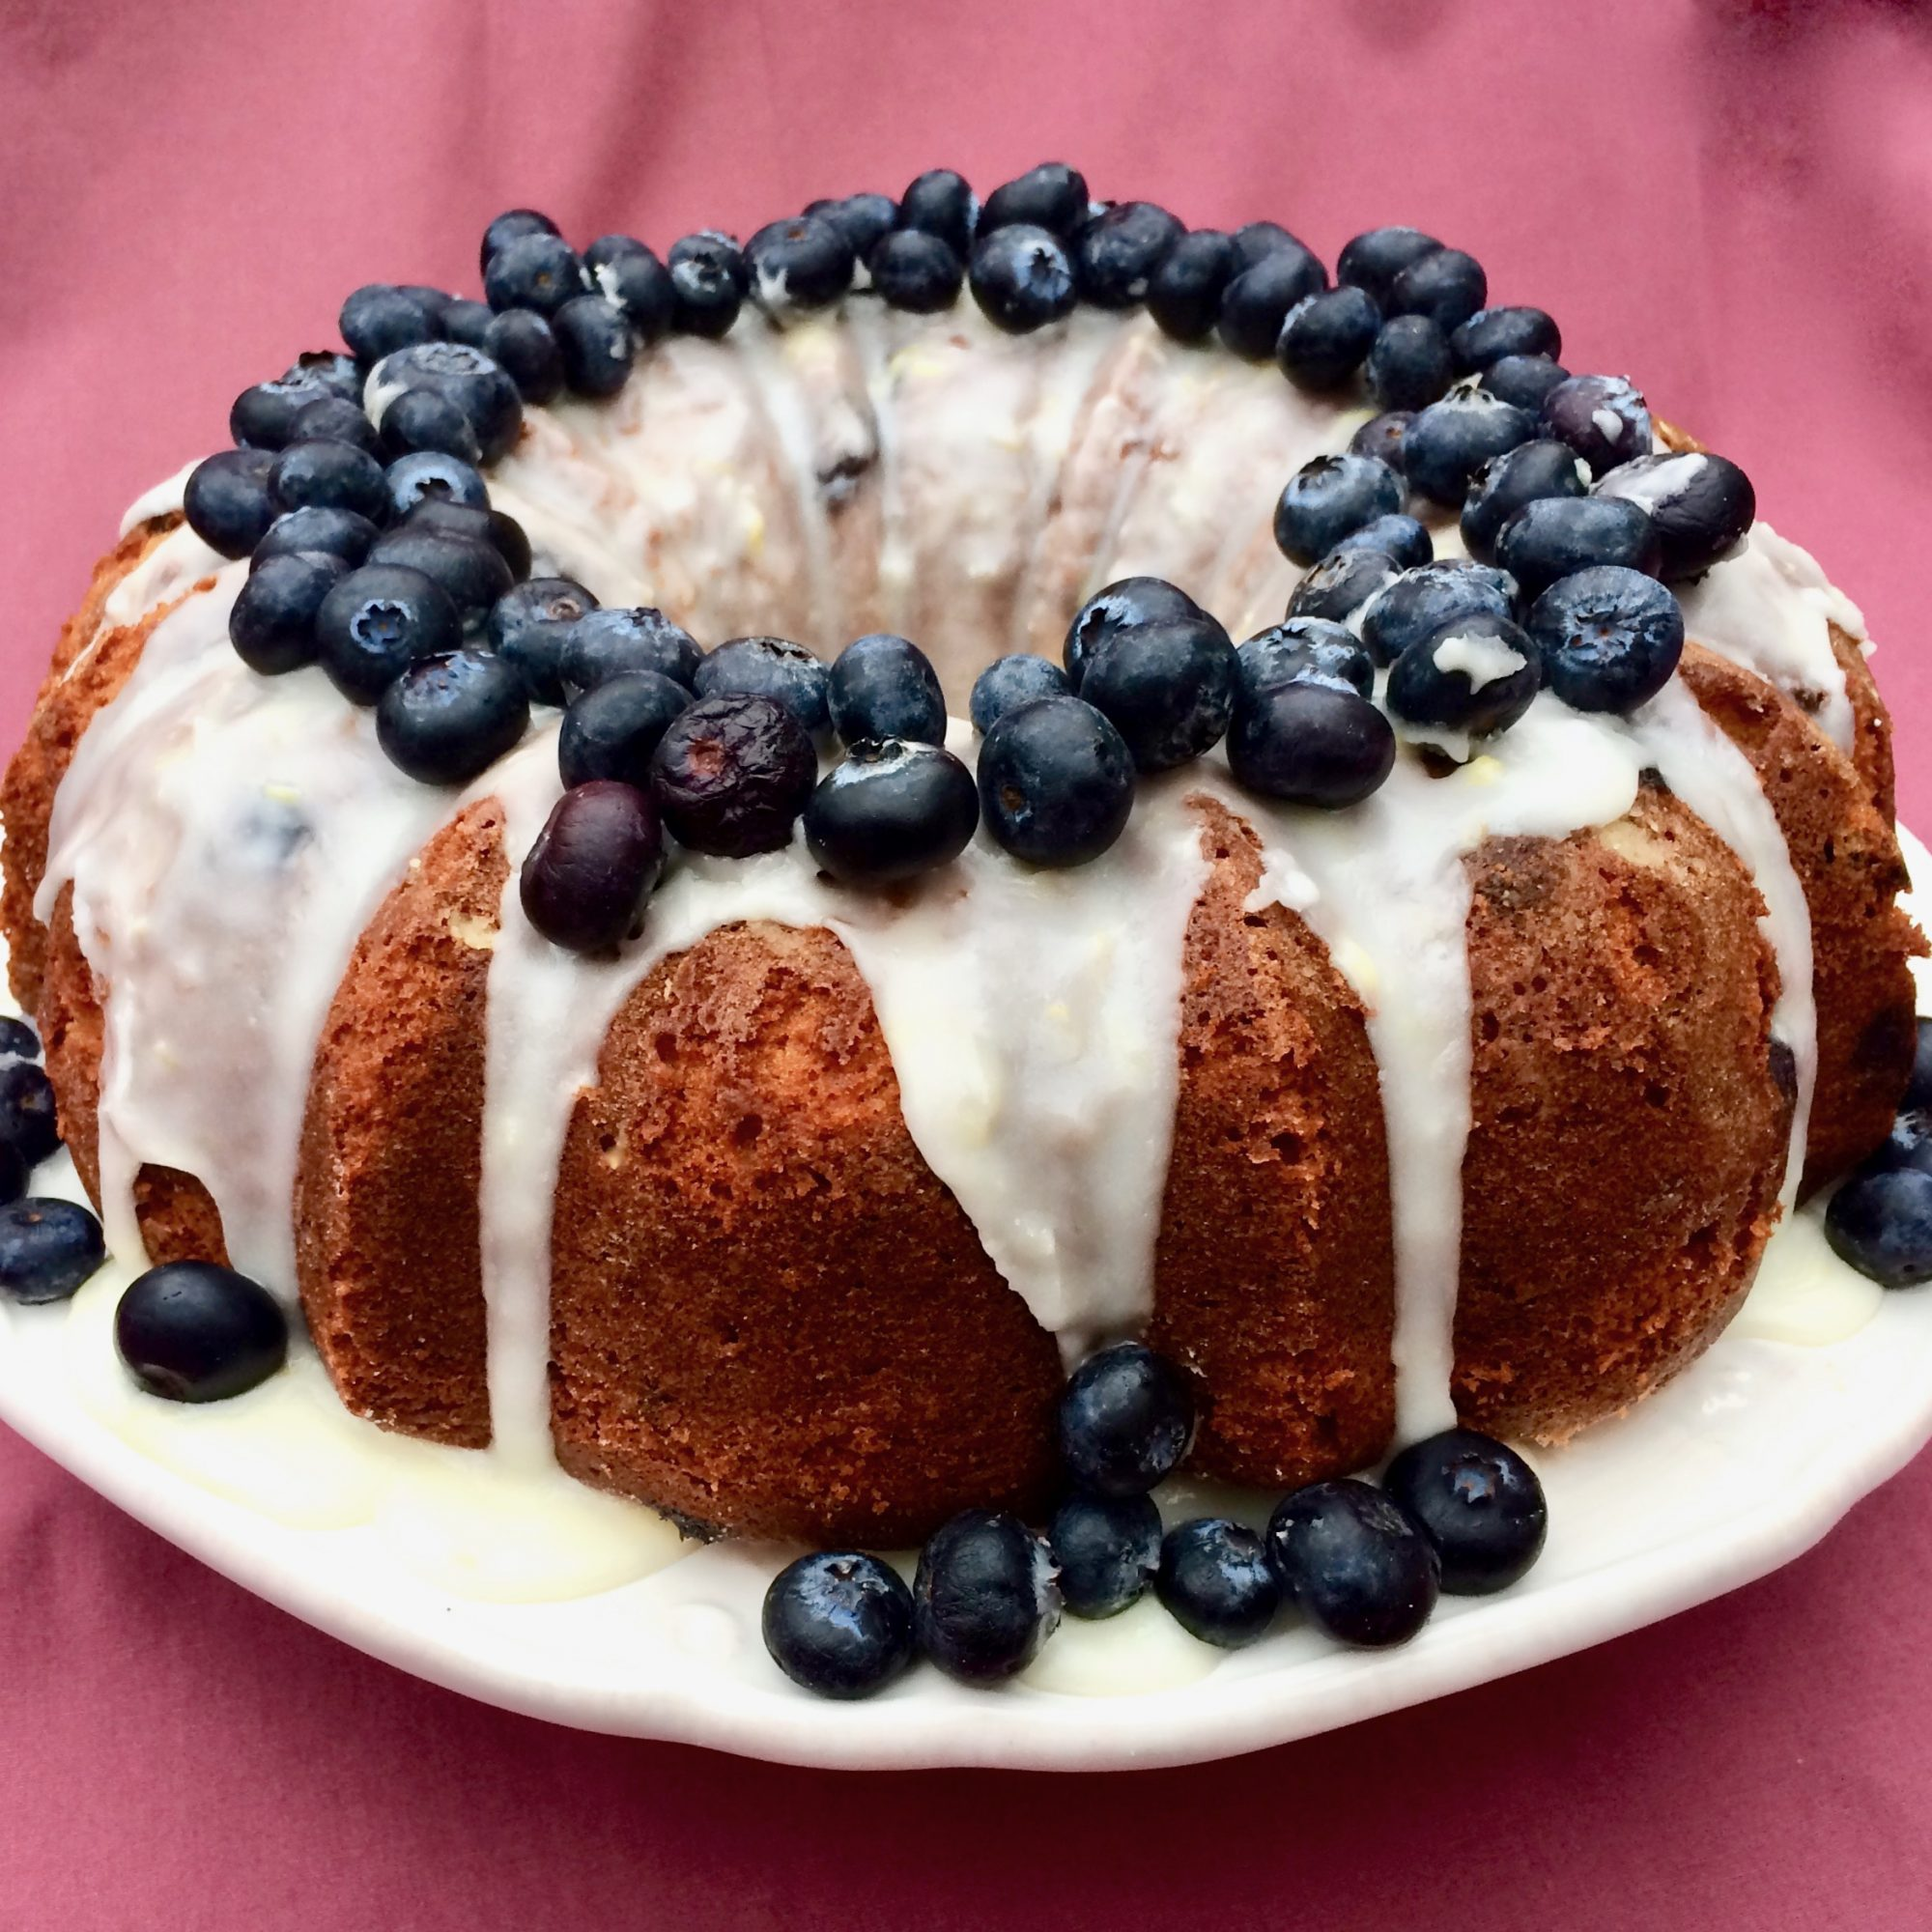 Lemon-Blueberry Bundt® Cake